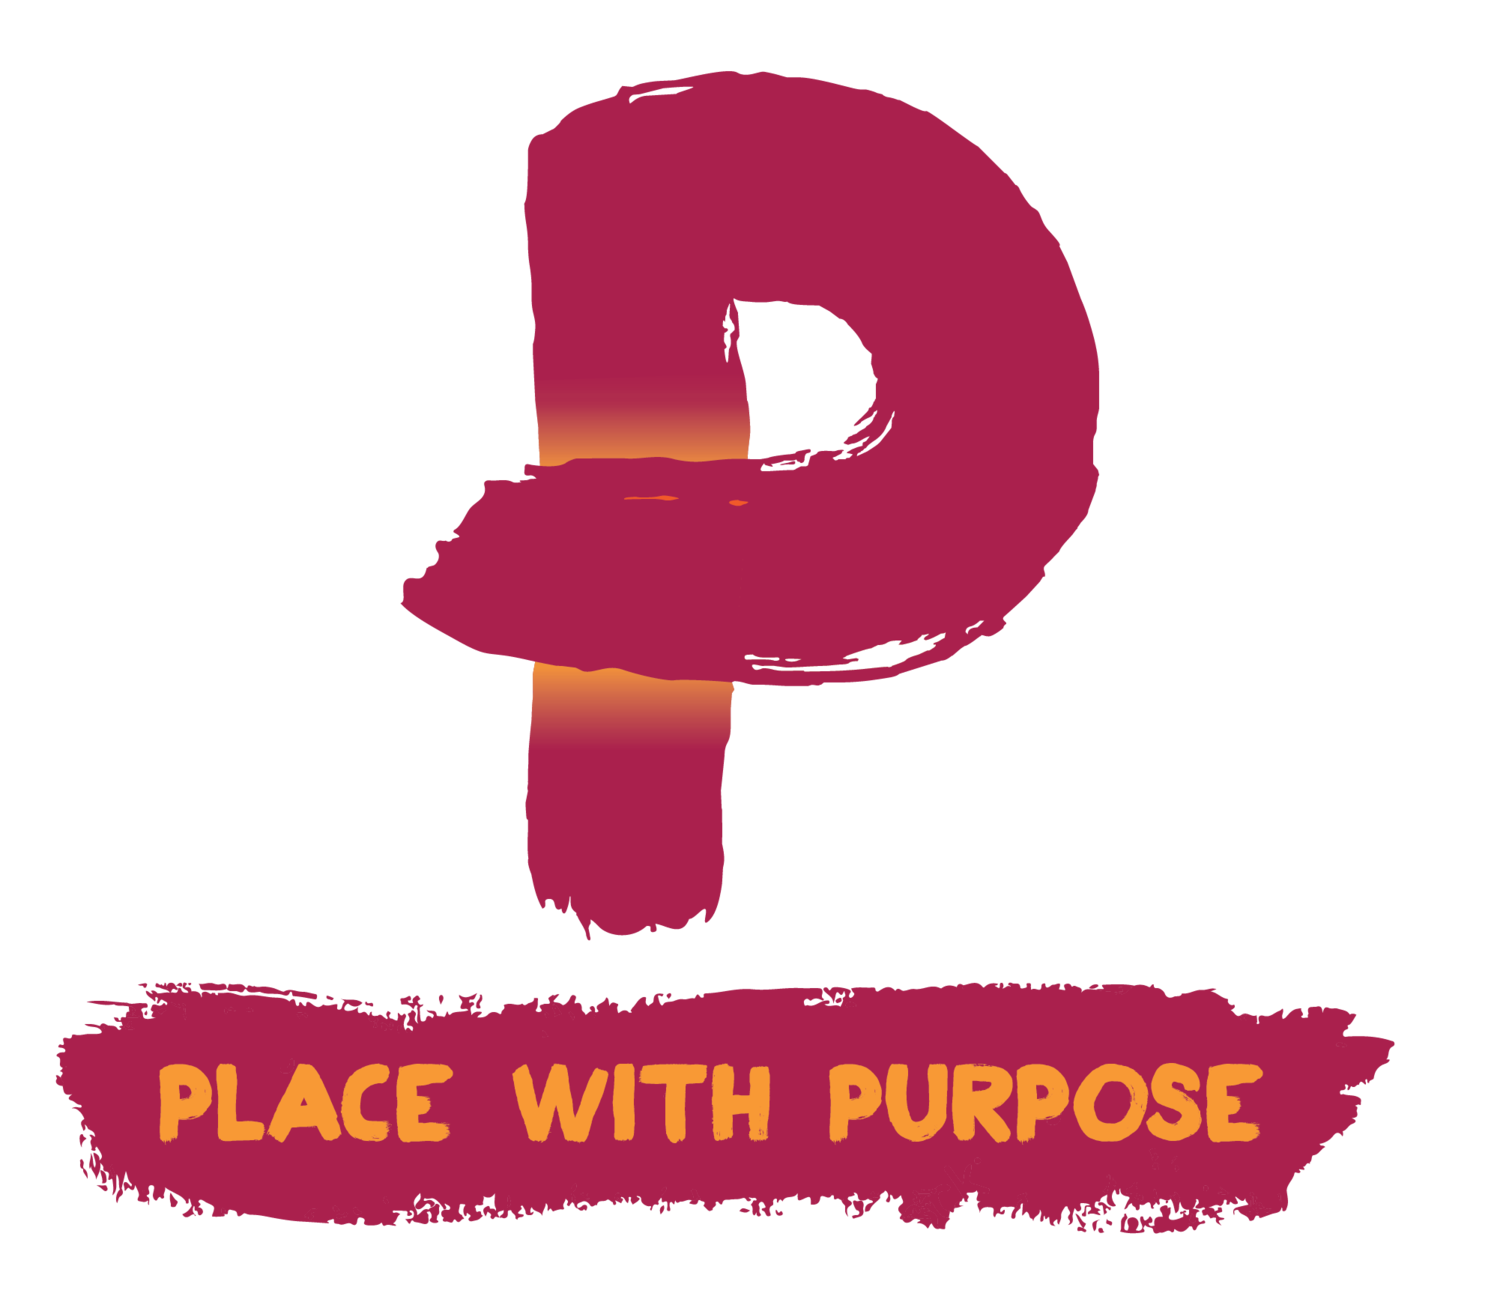 Place with Purpose